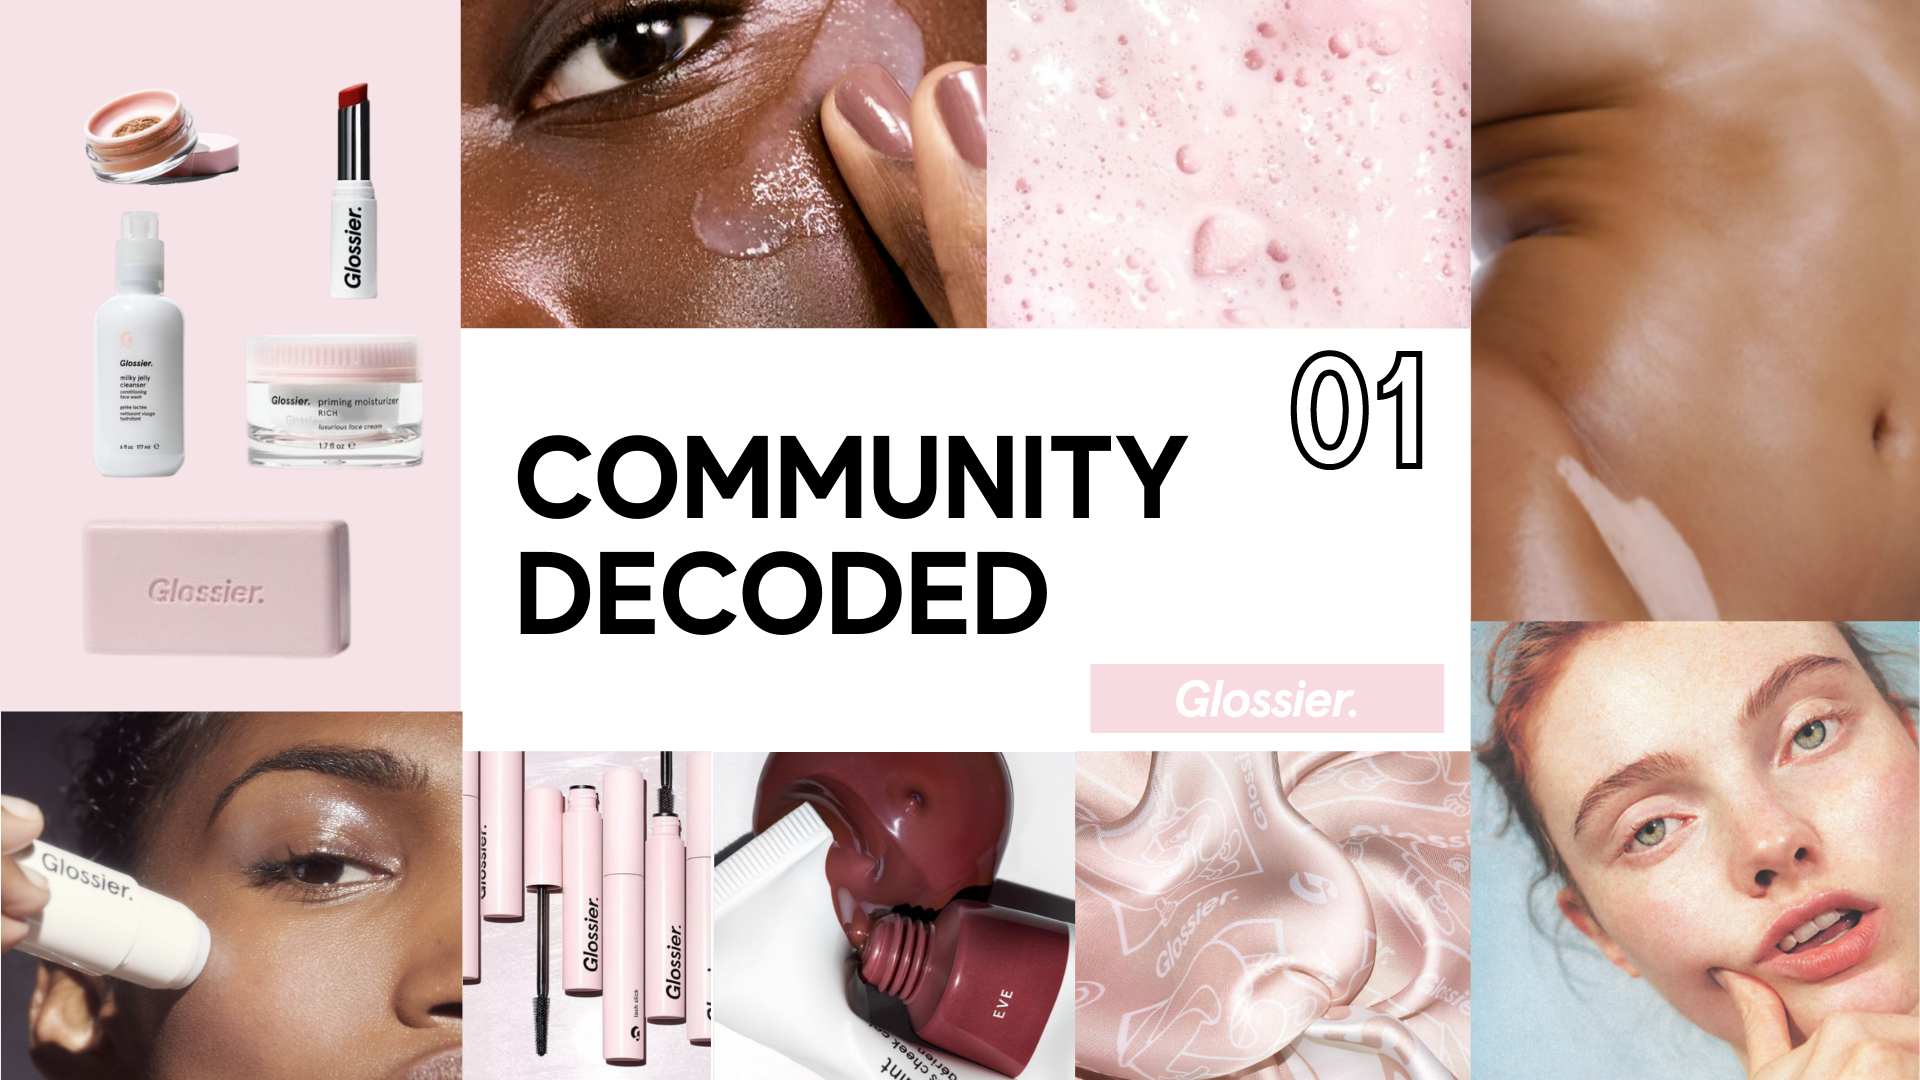 Community Decoded: Why Glossier's community strategy works